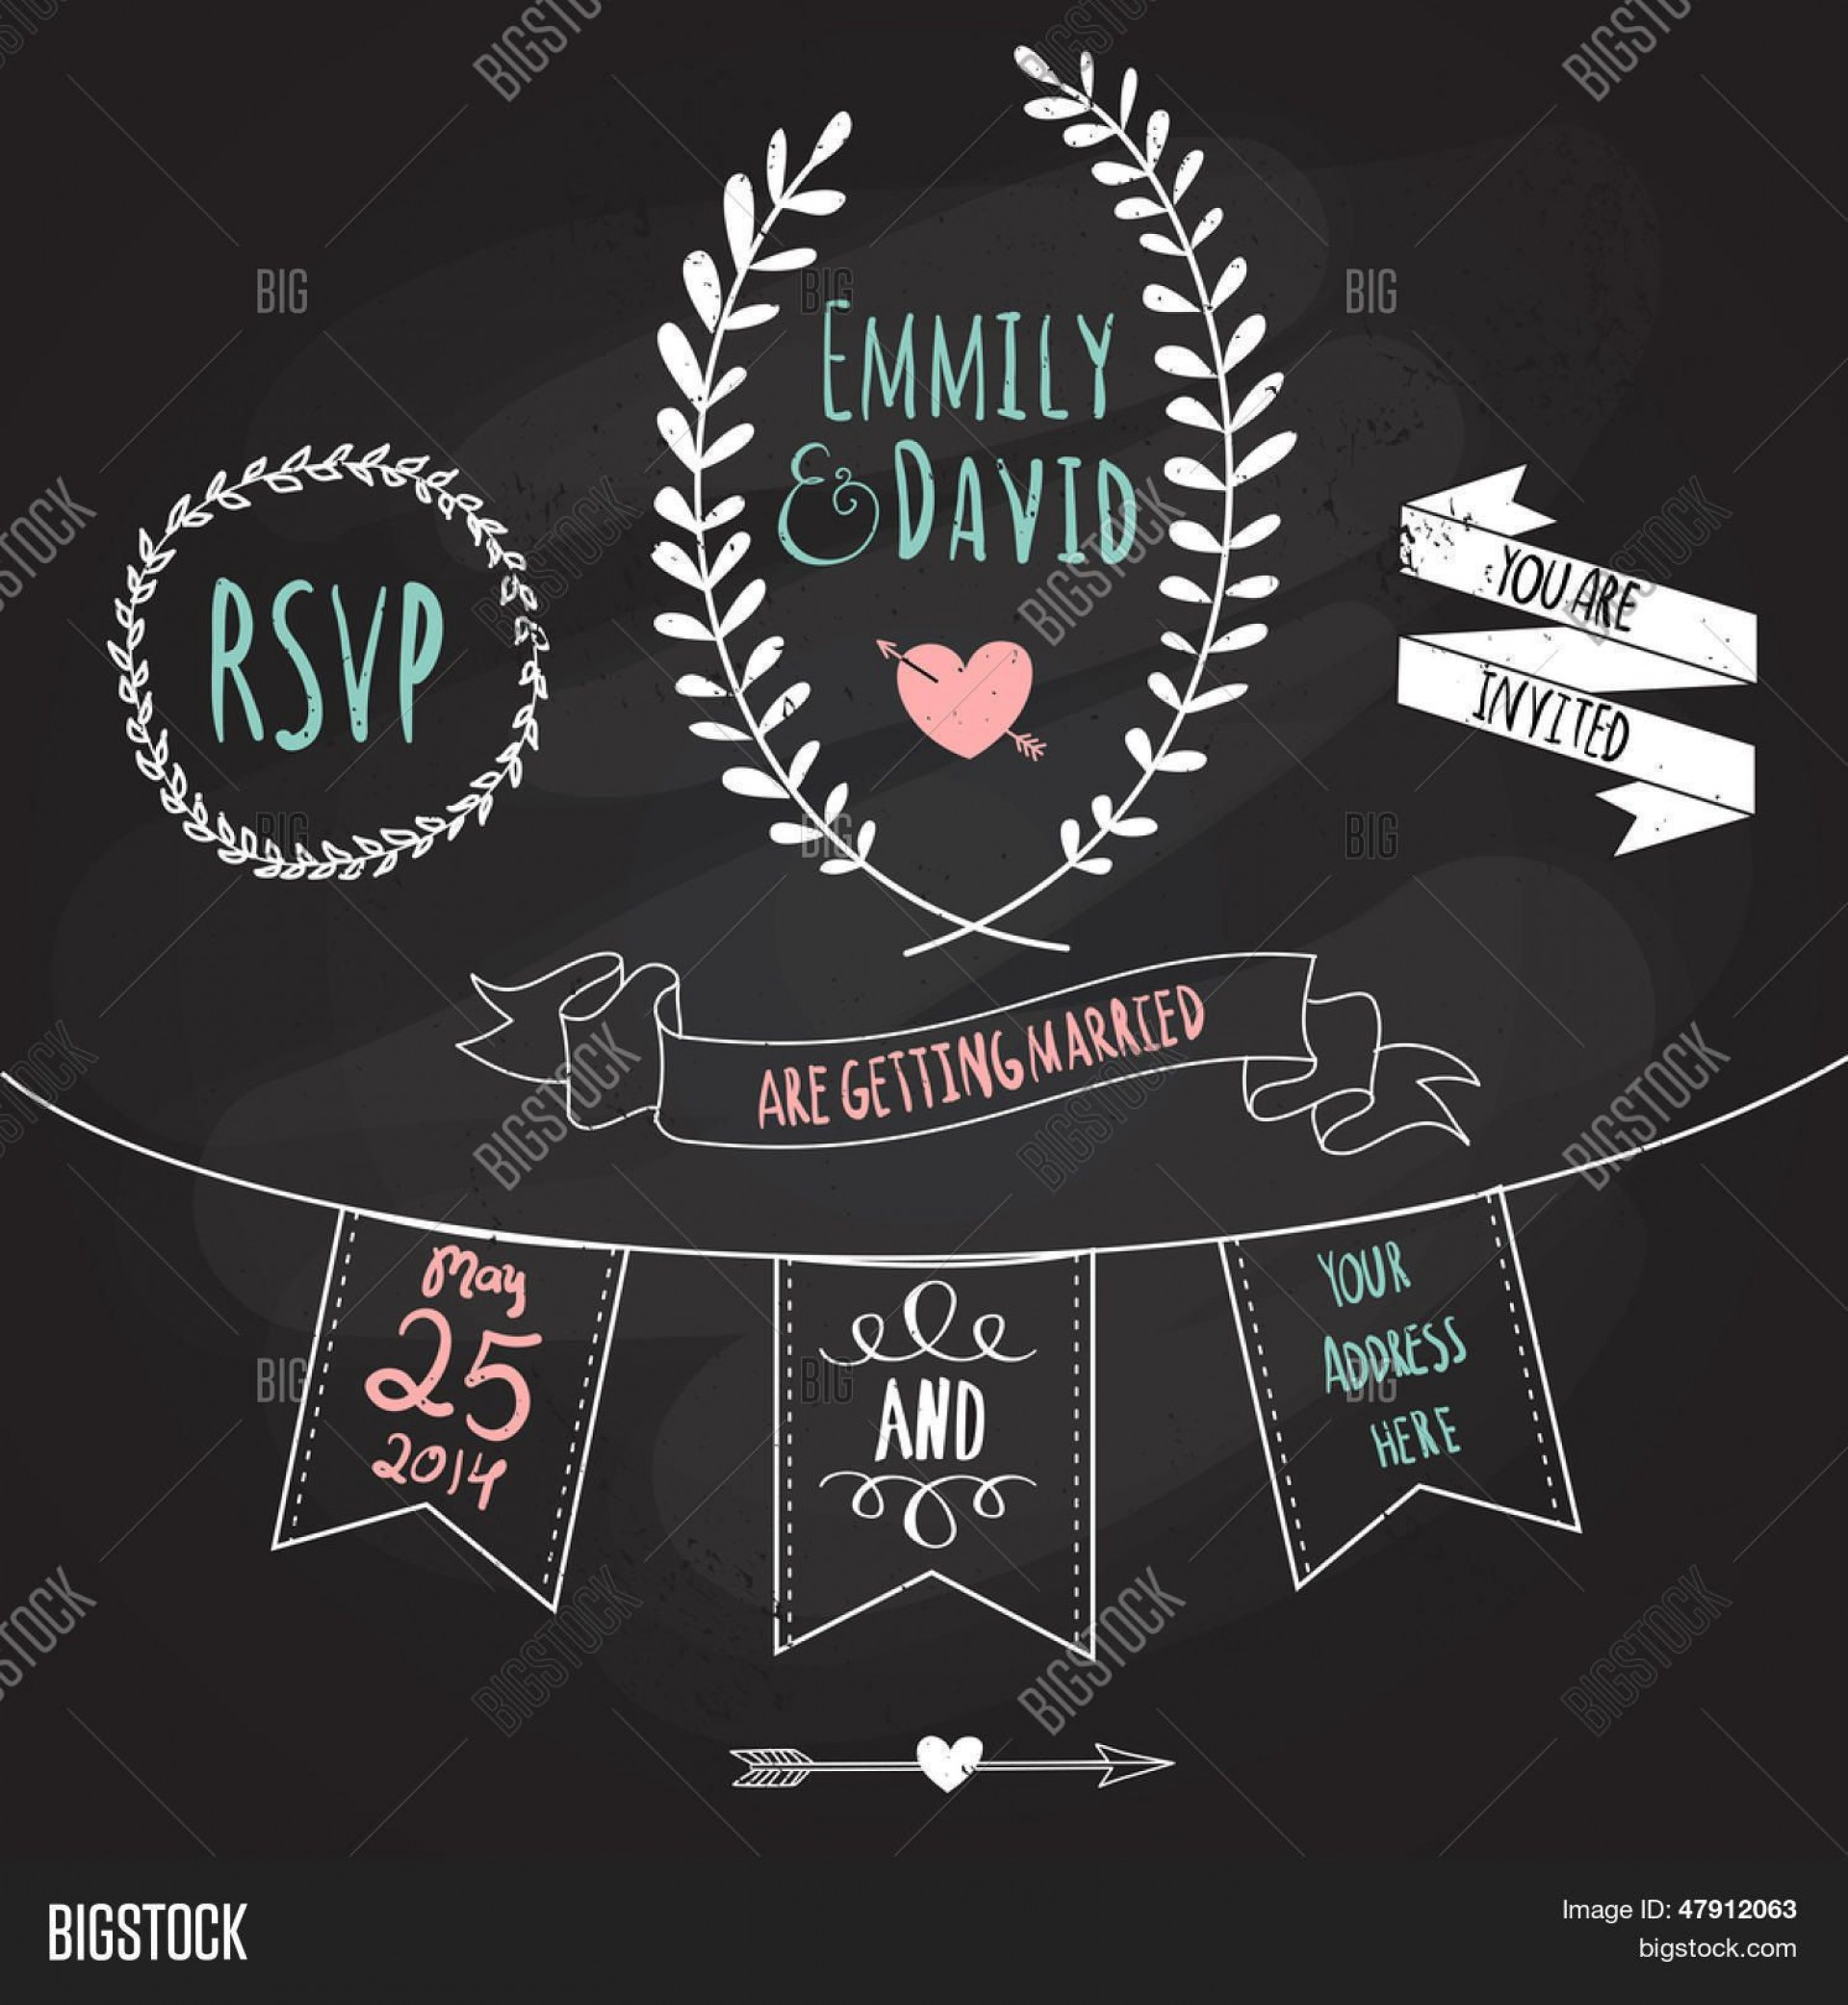 003 Simple Chalkboard Invitation Template Free Sample  Download Wedding1920